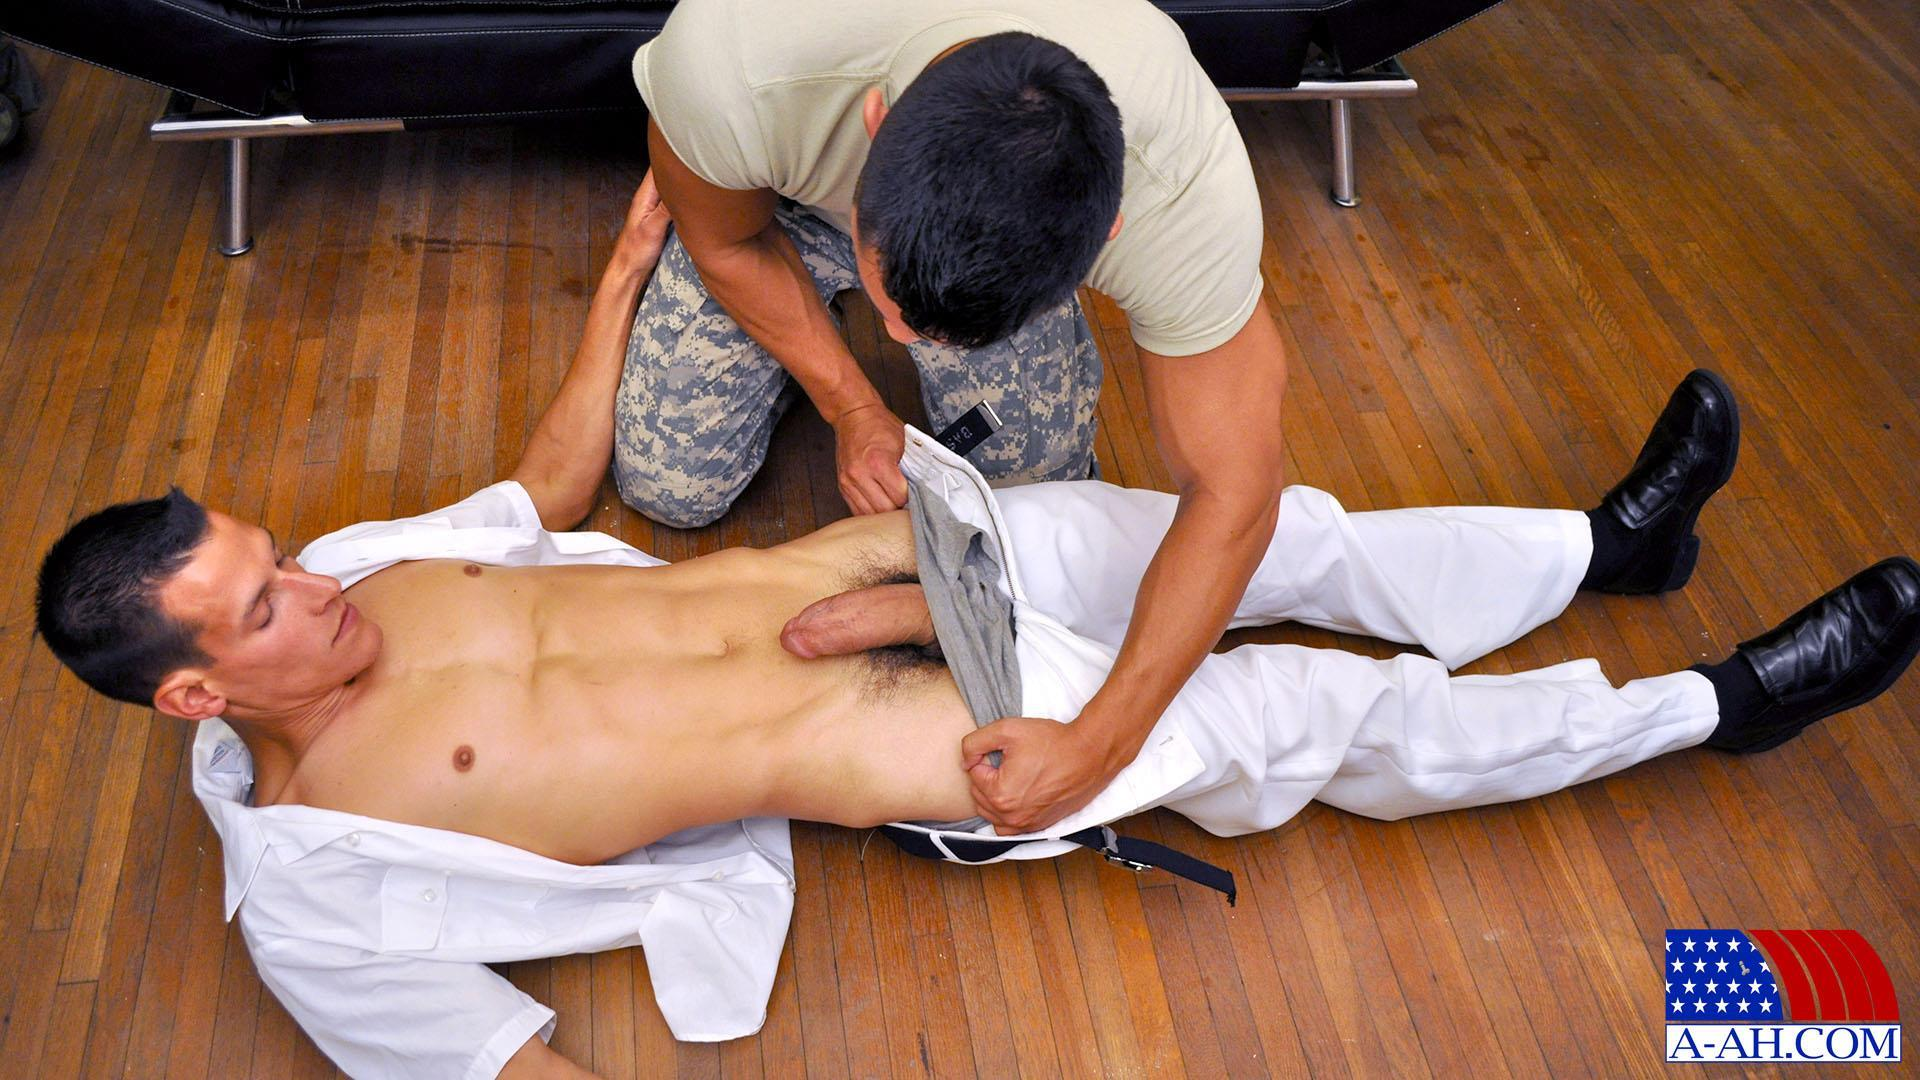 image Real straight army men doing gay porn first